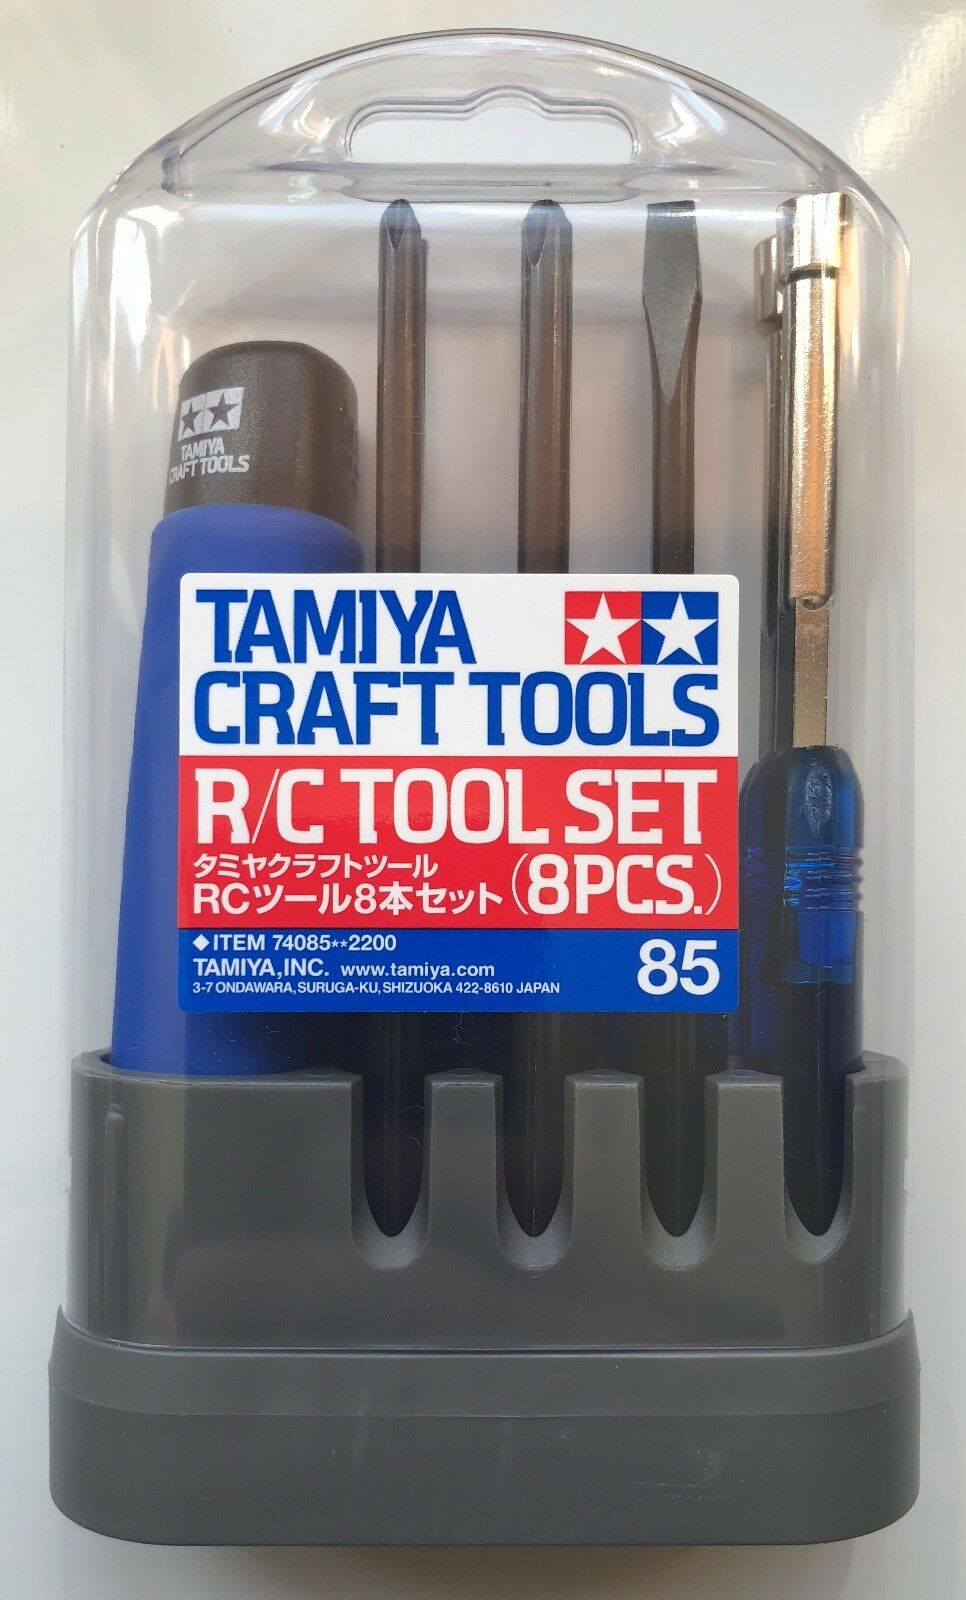 Tamiya 74085 RC Tool Set (8 Pcs) (Tamiya Craft Tools) NIB